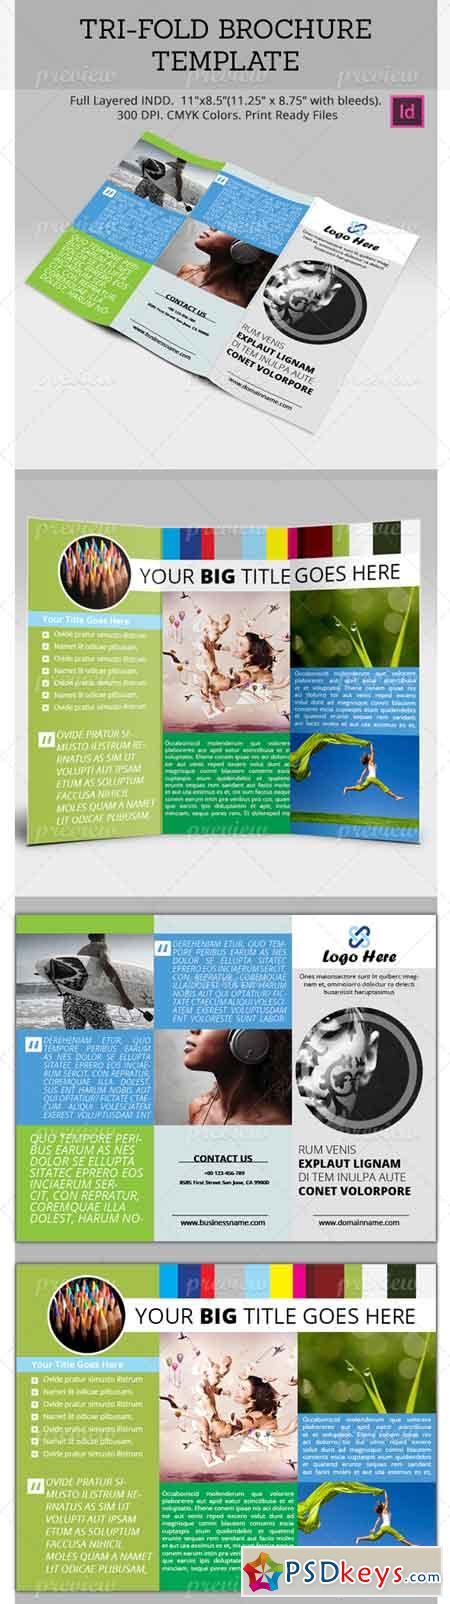 Tri fold brochure template 2049 free download photoshop for Photoshop tri fold brochure template